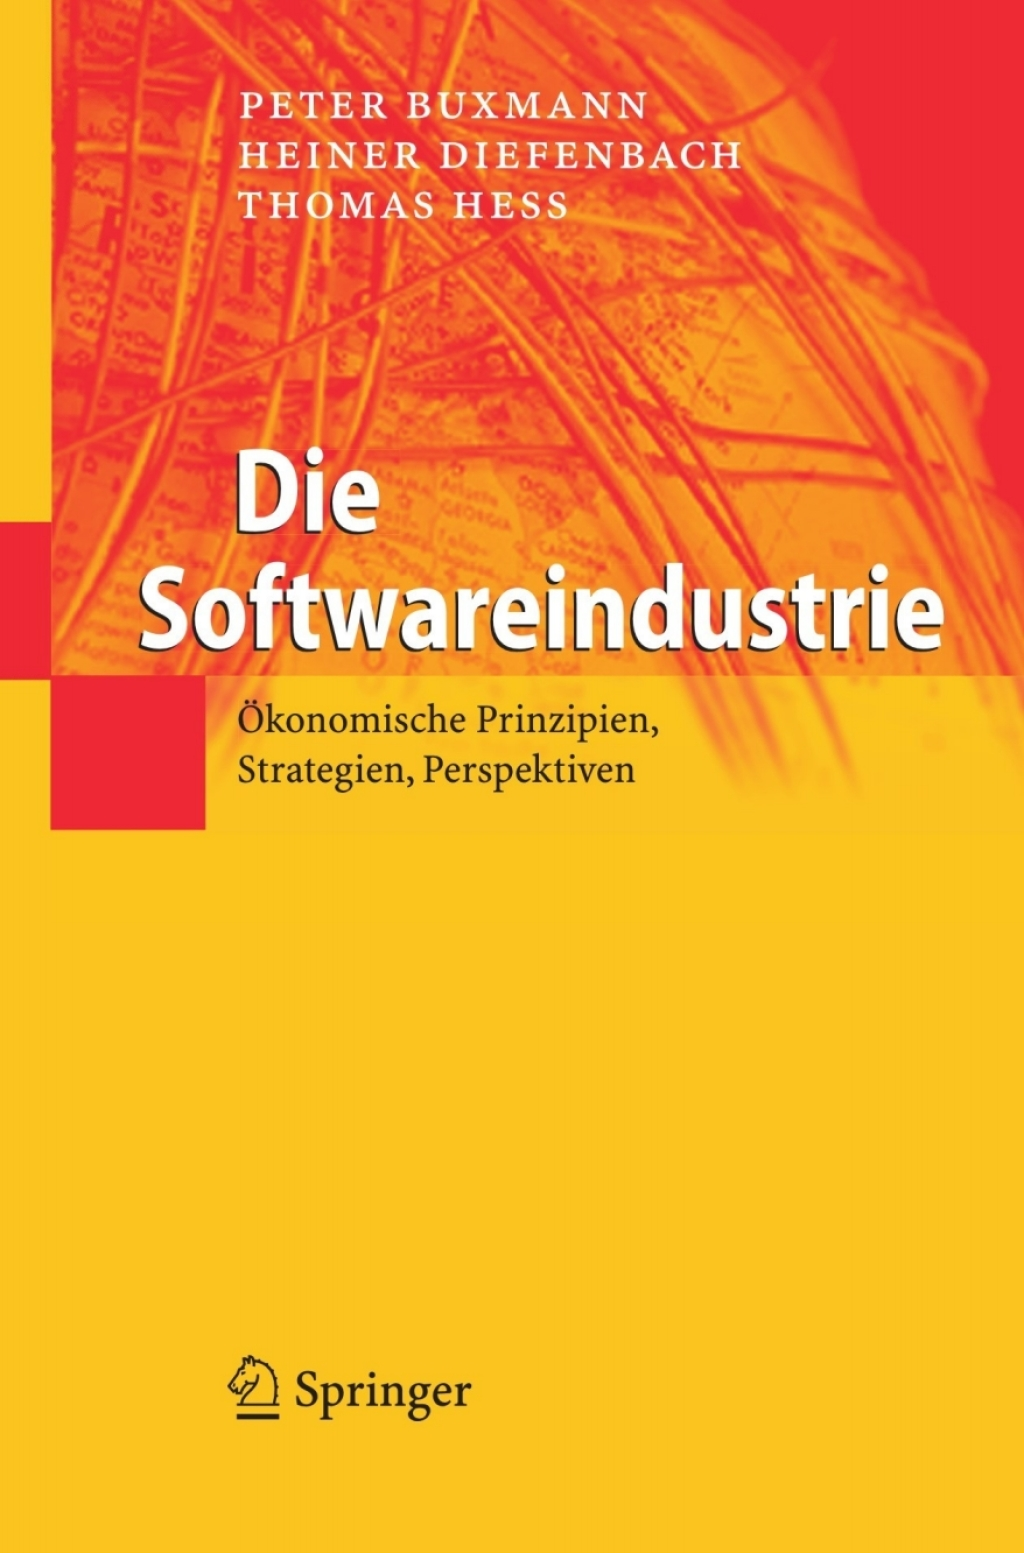 Die Softwareindustrie (eBook) - Peter Buxmann; Heiner Diefenbach; Thomas Hess